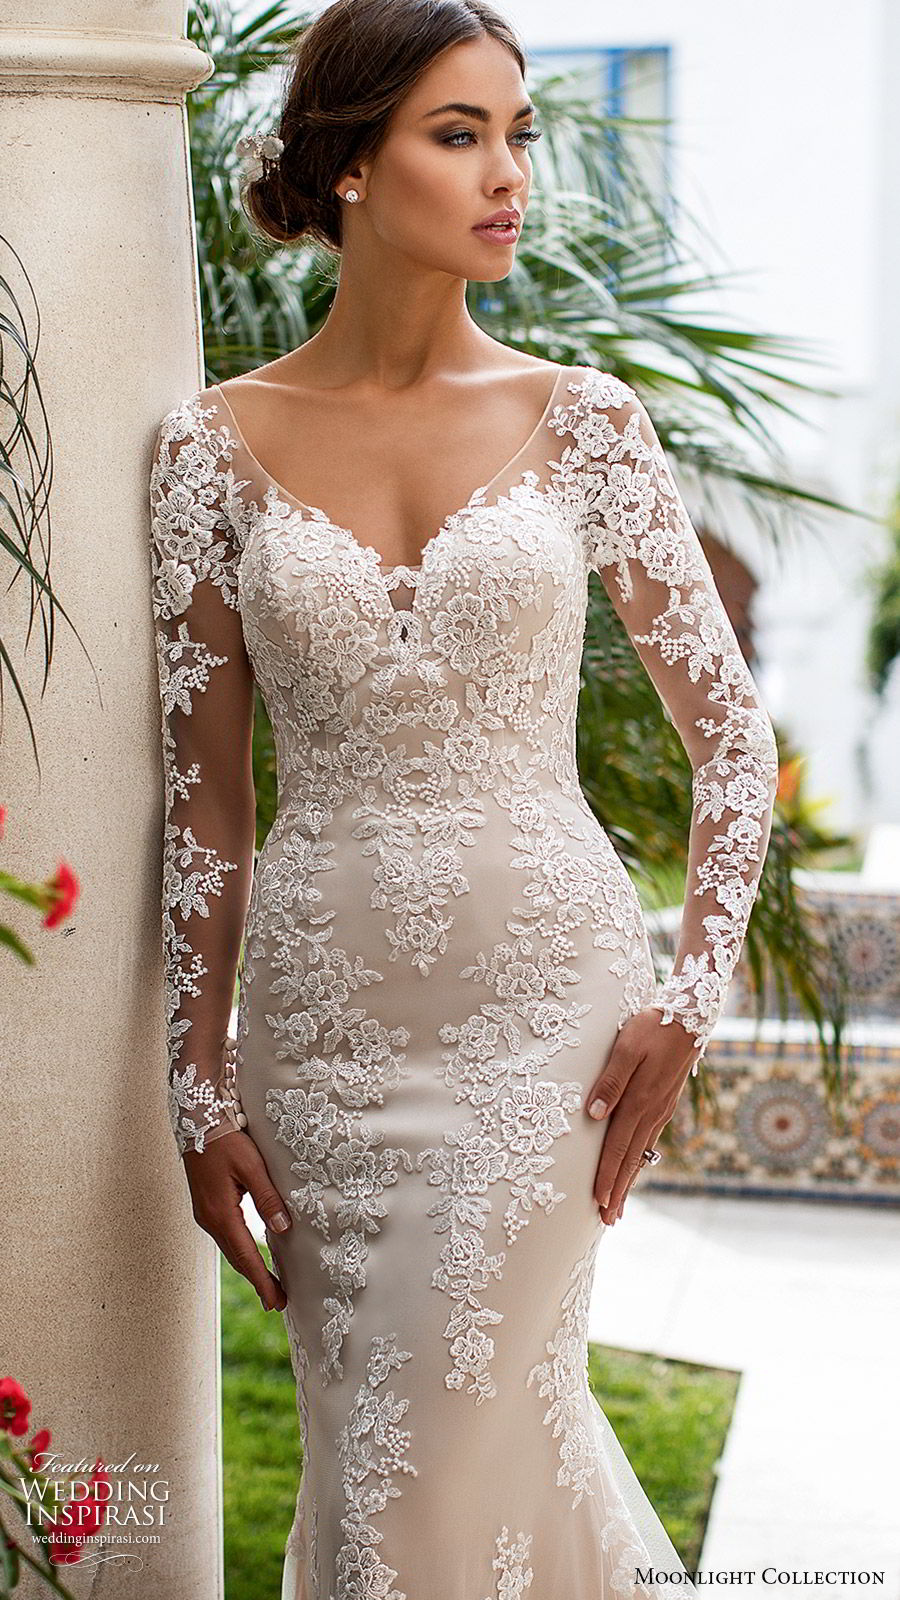 moonlight collection fall 2019 bridal illusion long sleeves sheer v neck sweetheart fully embellished lace sheath wedding dress (2) low illusion back chapel train elegant romantic zv